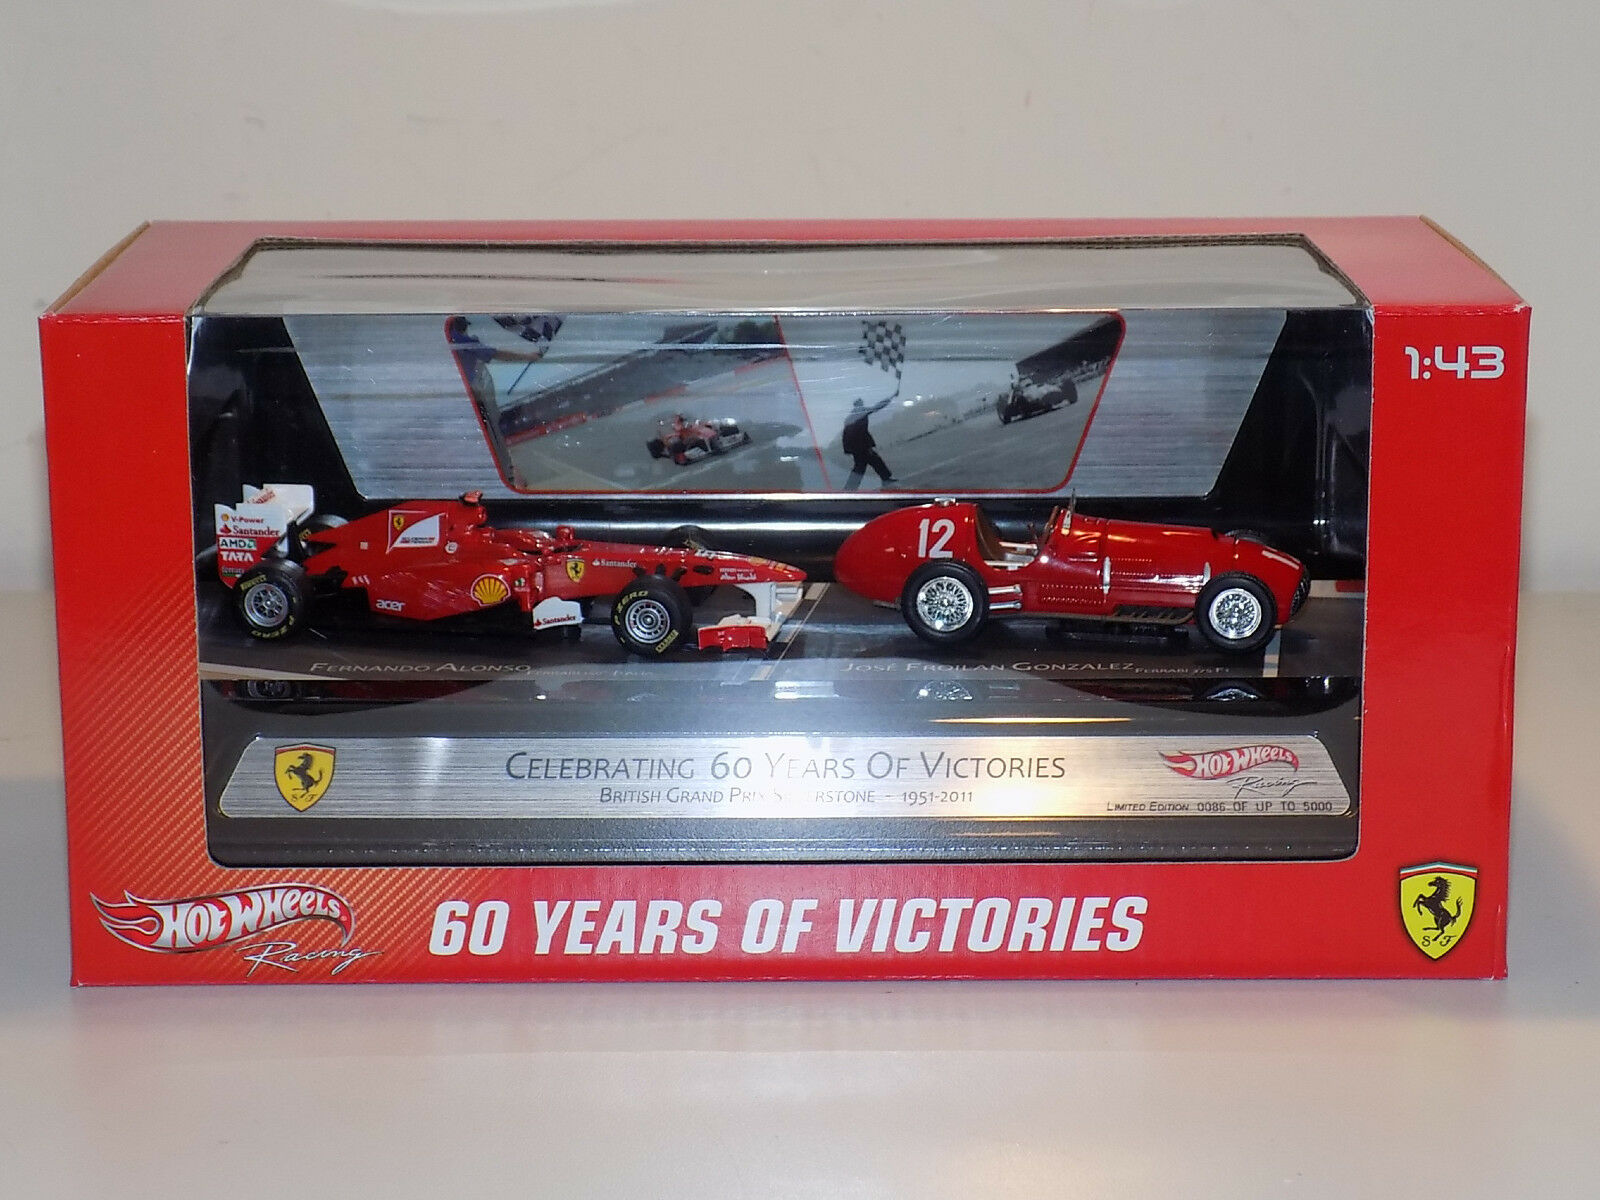 1/43 Mattell Mattell Mattell Hot Wheels F1 Ferrari 375 and 150 Italia 2 CAR SET British GP 1st 74e69f